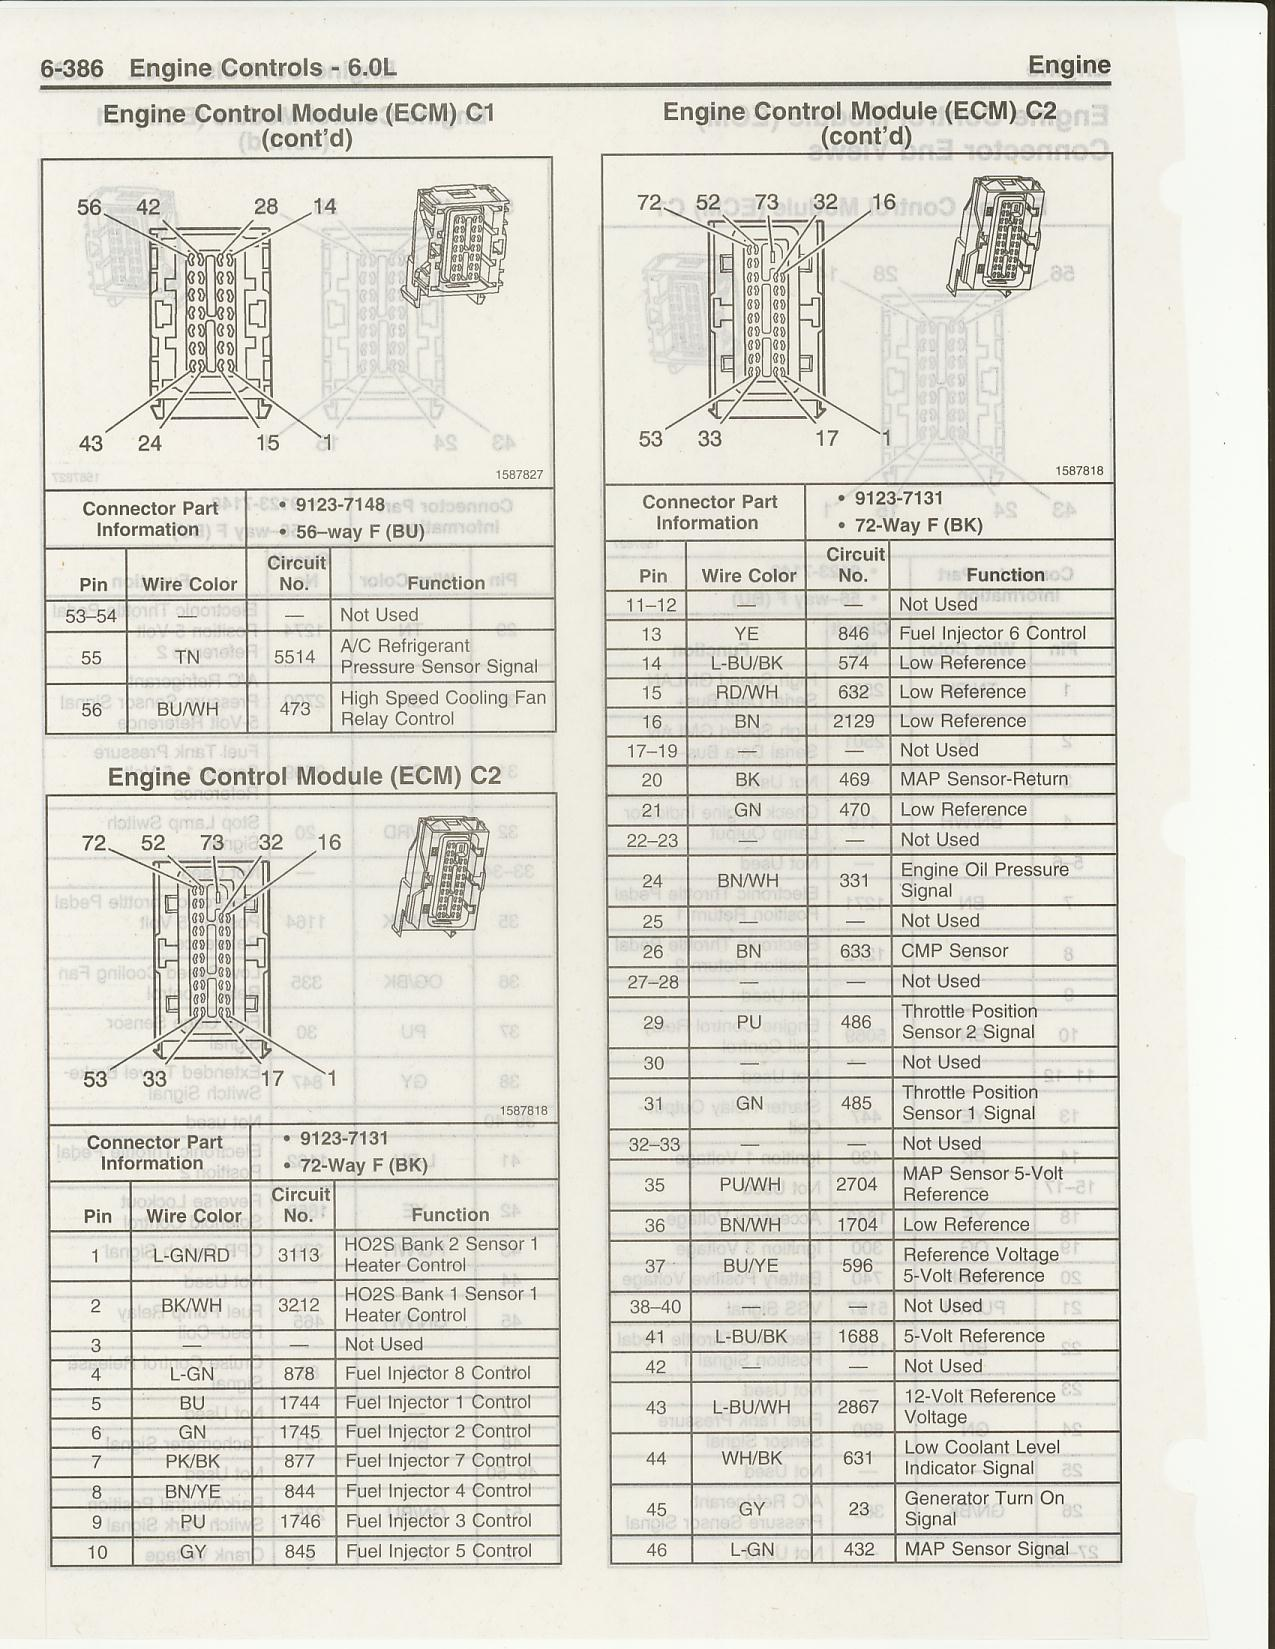 2002 Trailblazer Pcm Wiring Diagram Good 1st Chevy Harness Pinouts And Diagrams Page 4 Ls1tech Camaro Firebird Rh Com Schematics